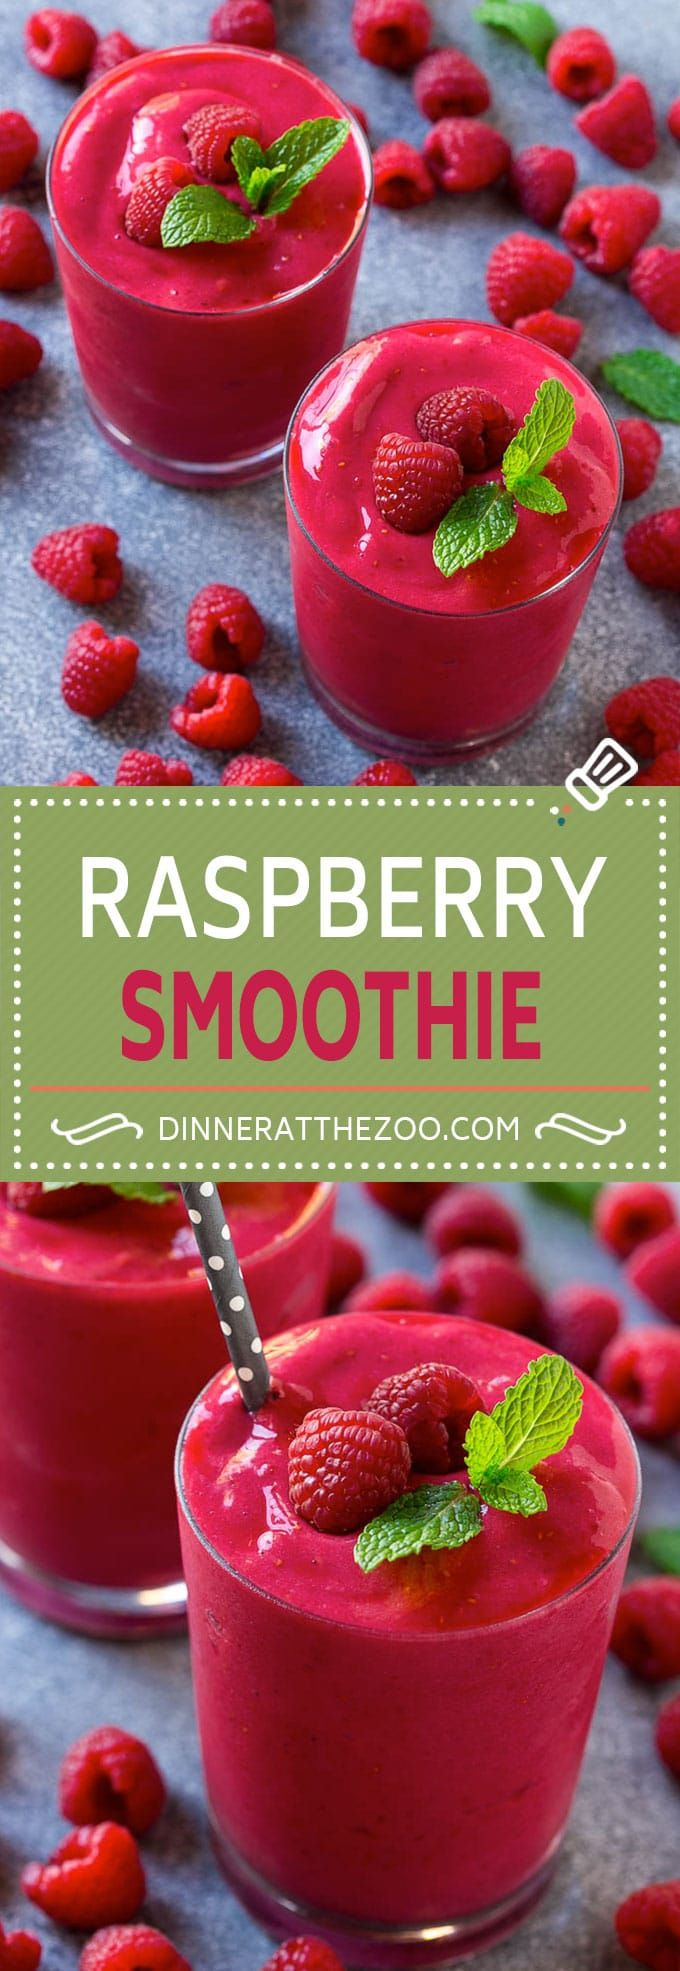 Raspberry Smoothie Recipe | Raspberry Banana Smoothie | Healthy Smoothie | Berry Smoothie | Greek Yogurt Smoothie